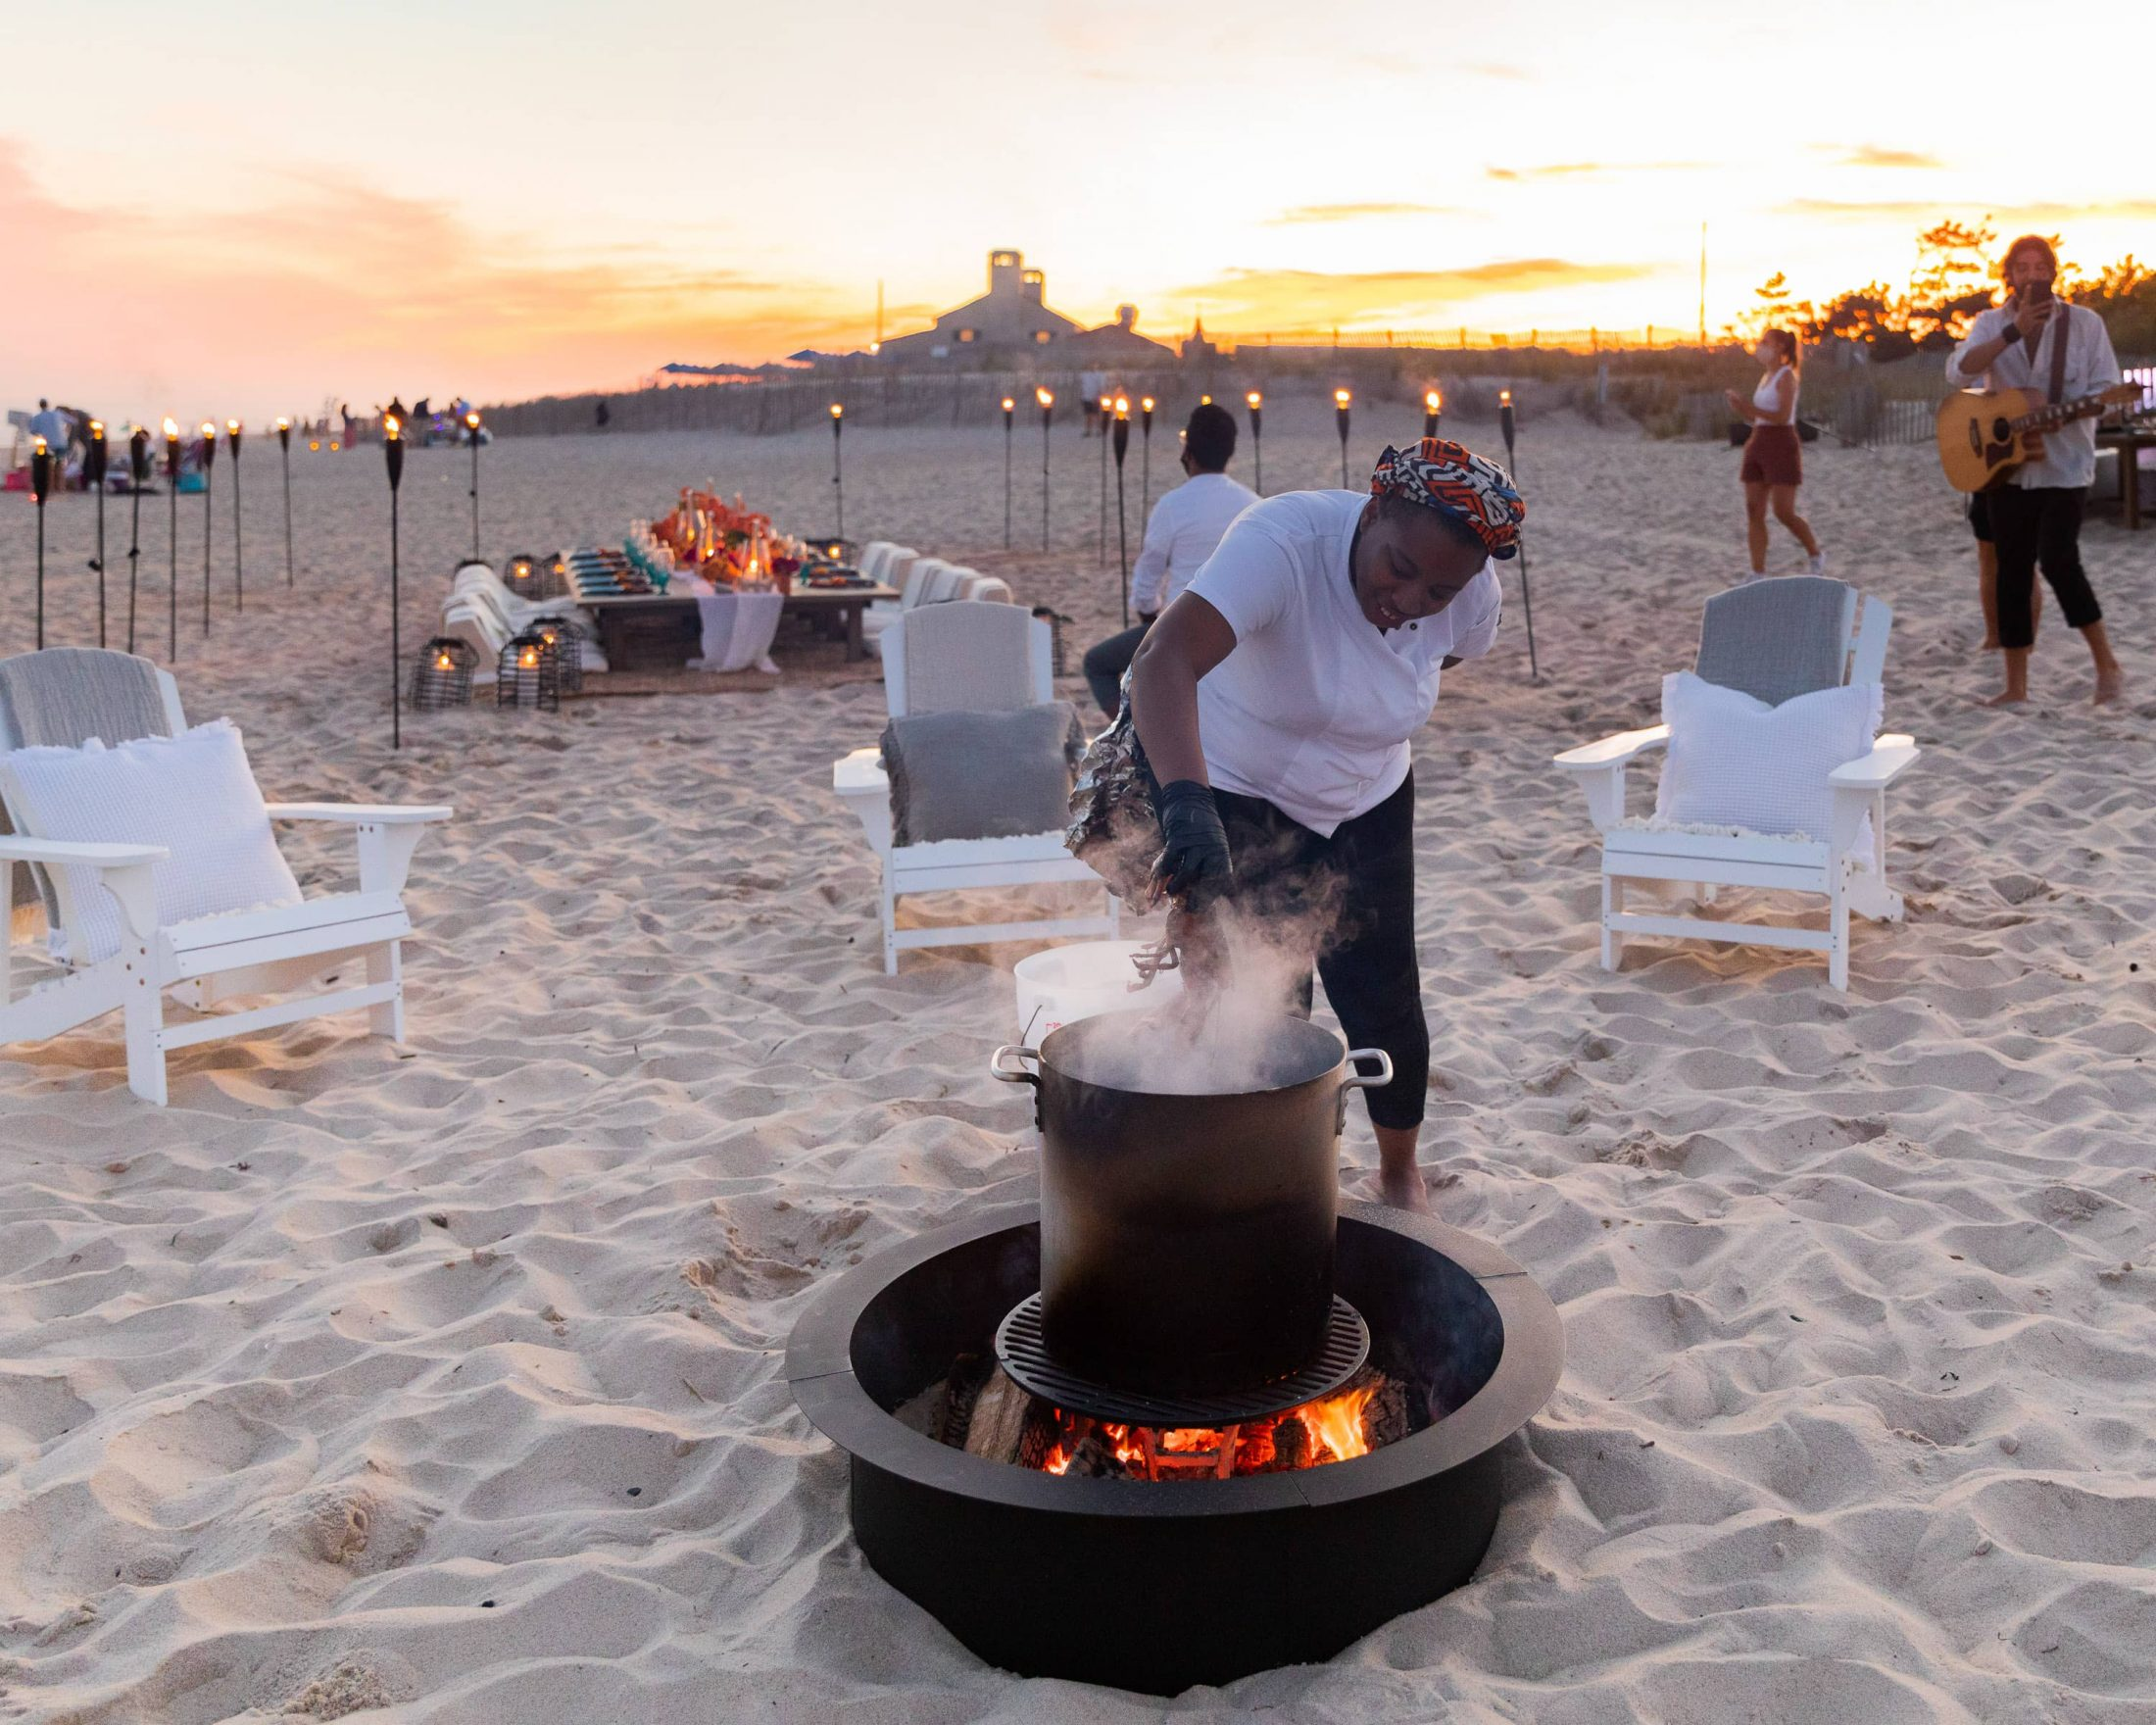 Fire pit at 40th birthday dinner on the beach in Southampton | Photo by Luis Zepeda